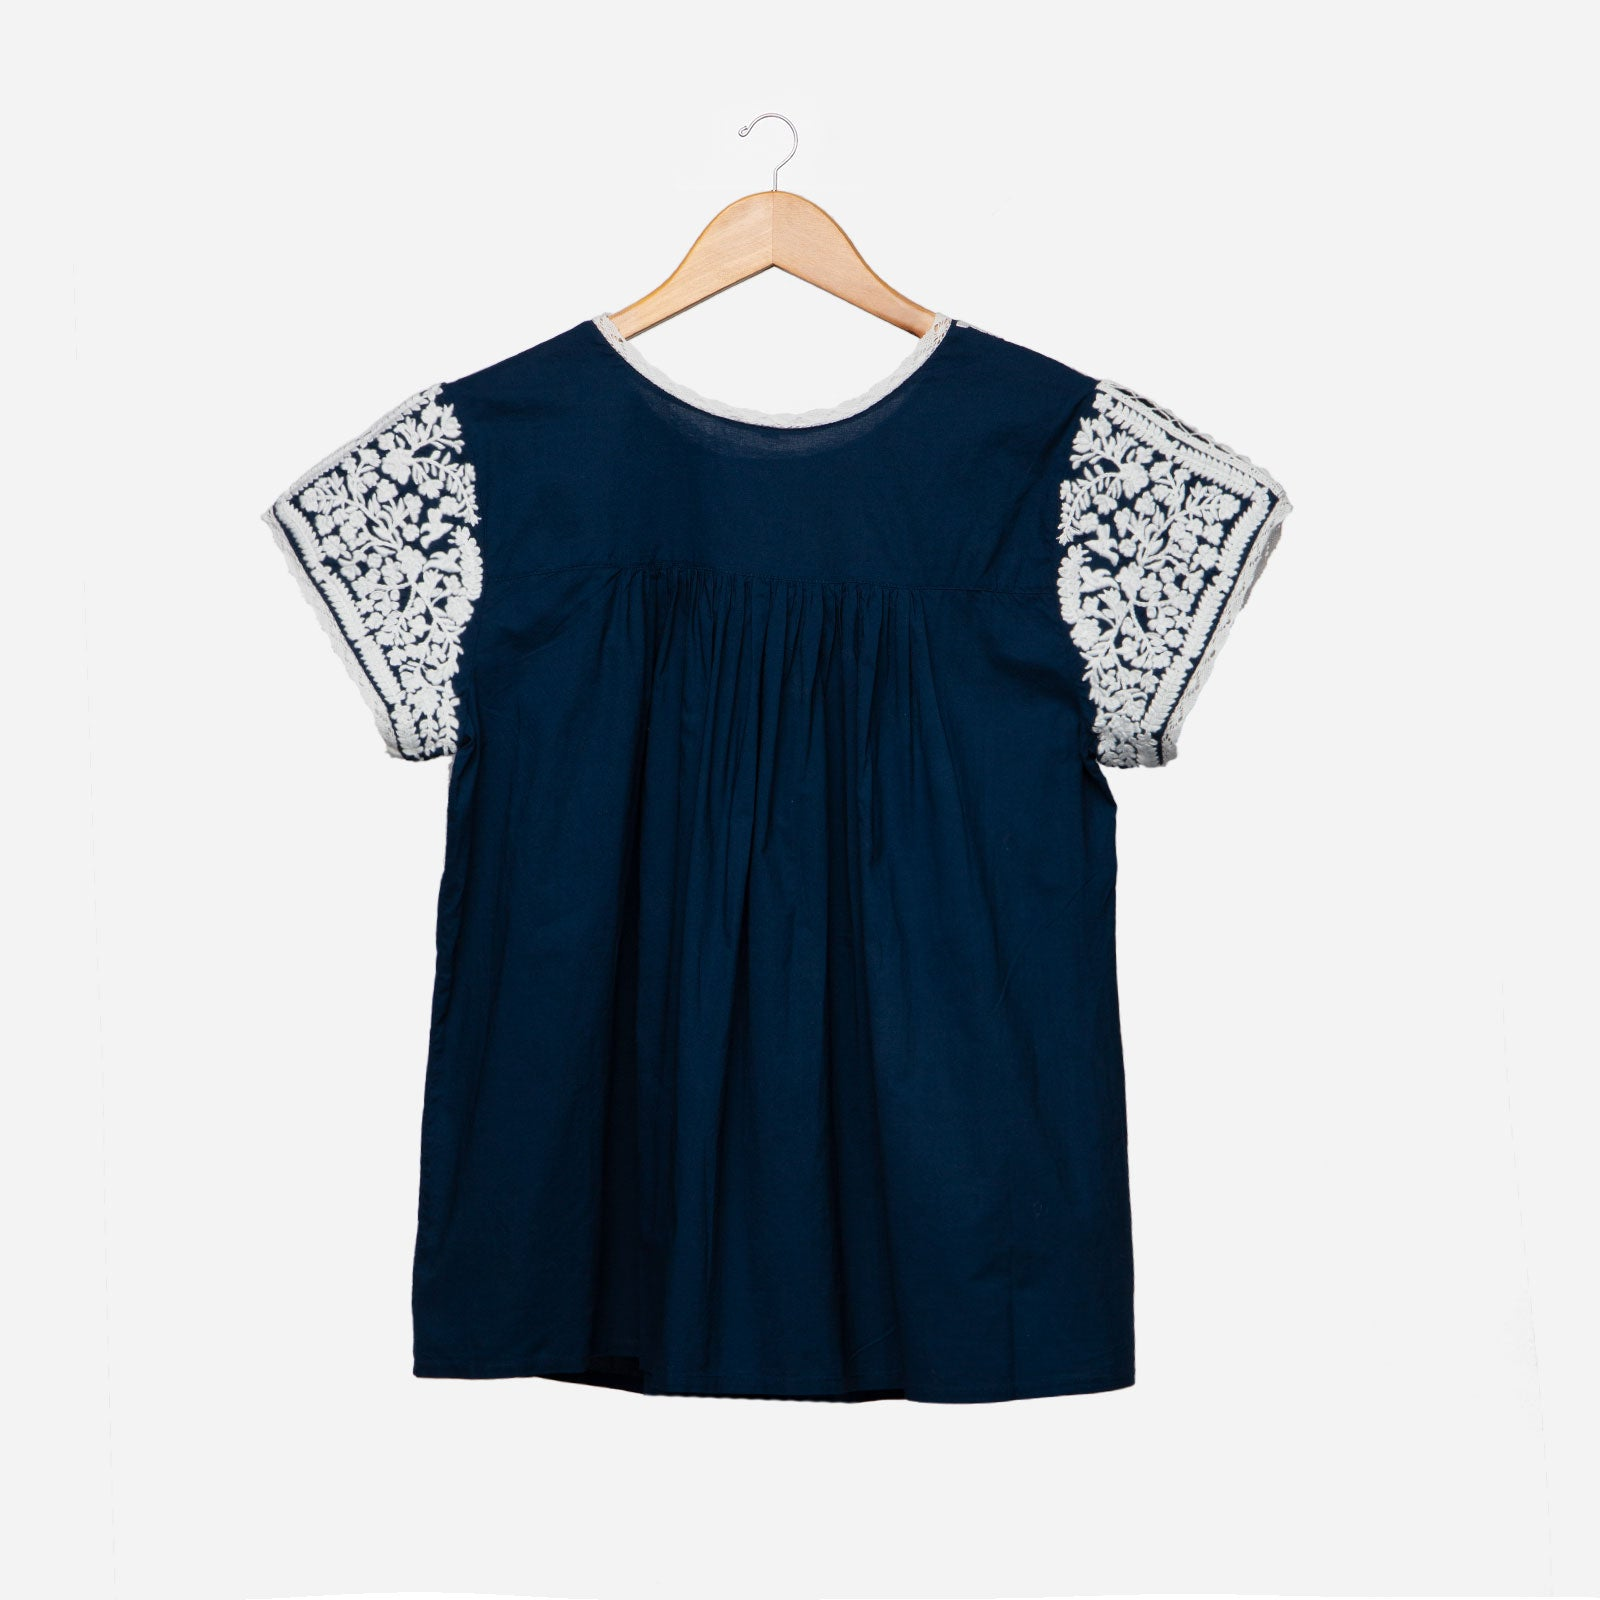 Floral Embroidered Lace Top Navy Oyster